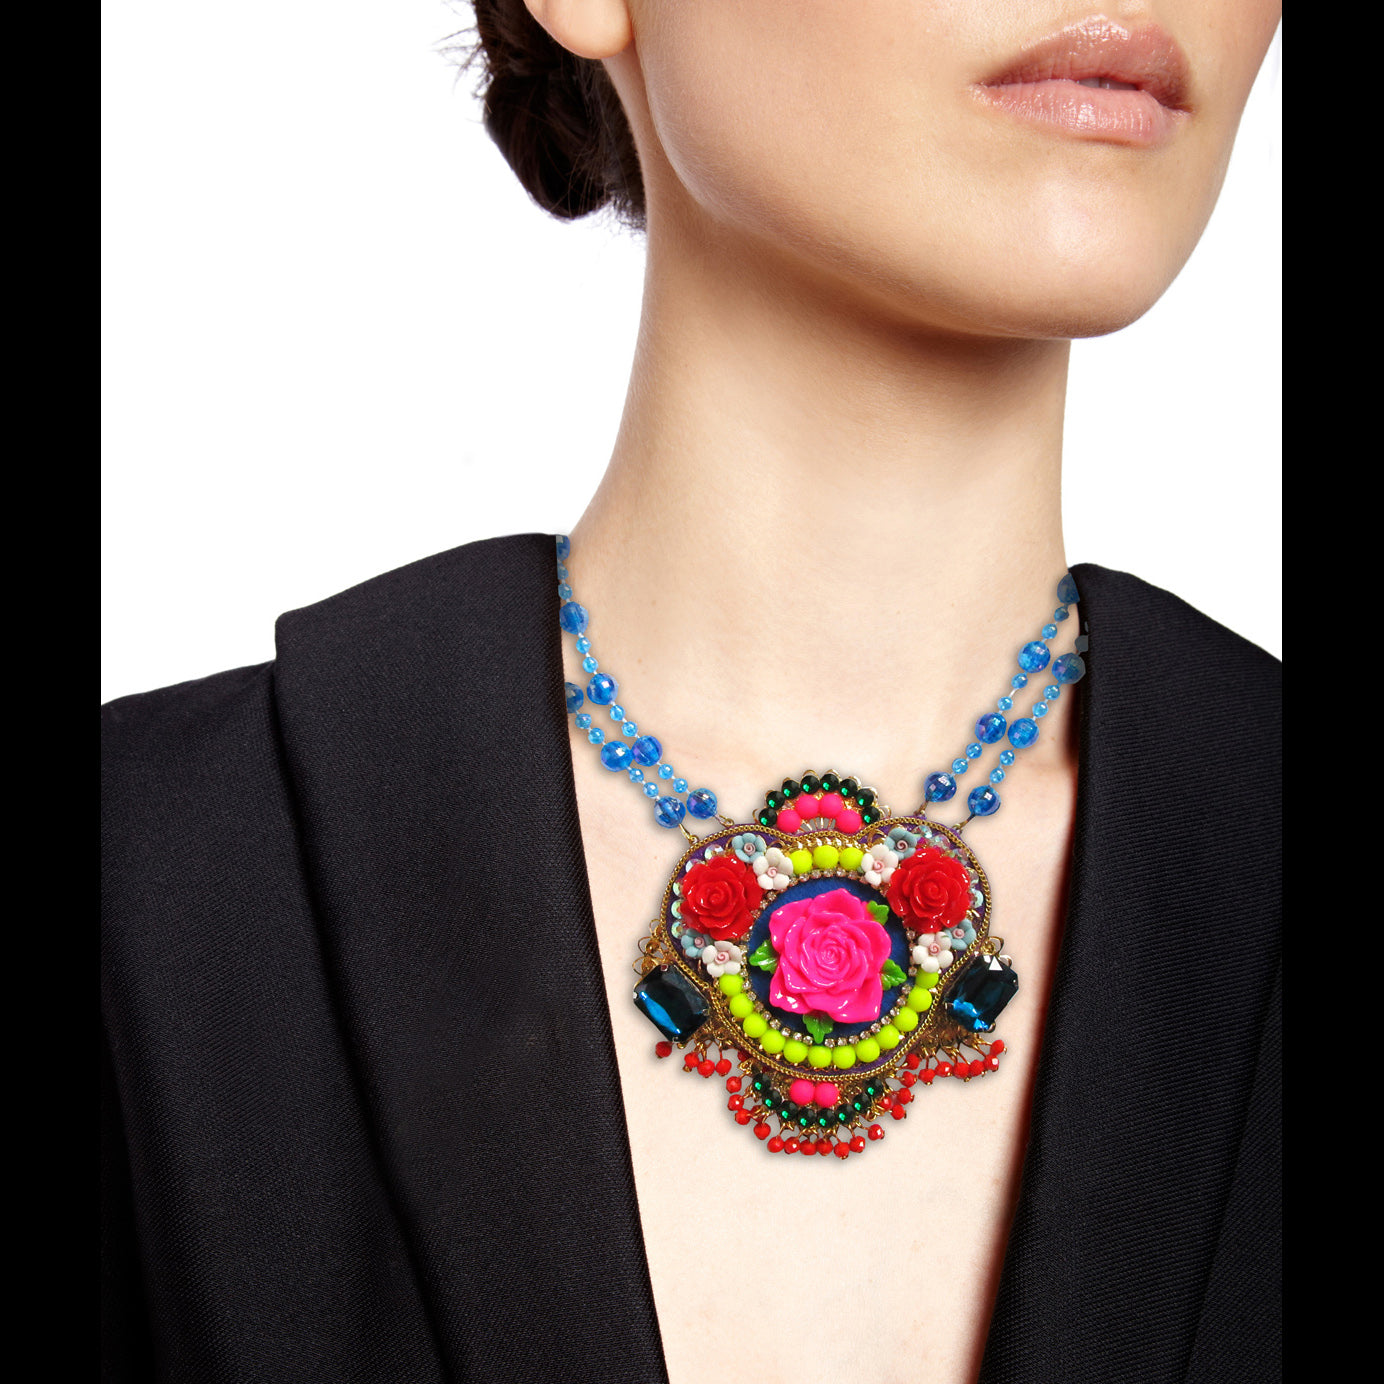 Mouchkine Jewelry flowers from Russia Necklace, entirely handmade and made in France, a haute couture jewel to sublimate your style with grace. Delicate ceramic flowers, blue swarovsky crystals, and little red glass pearls will give you a sublime look.